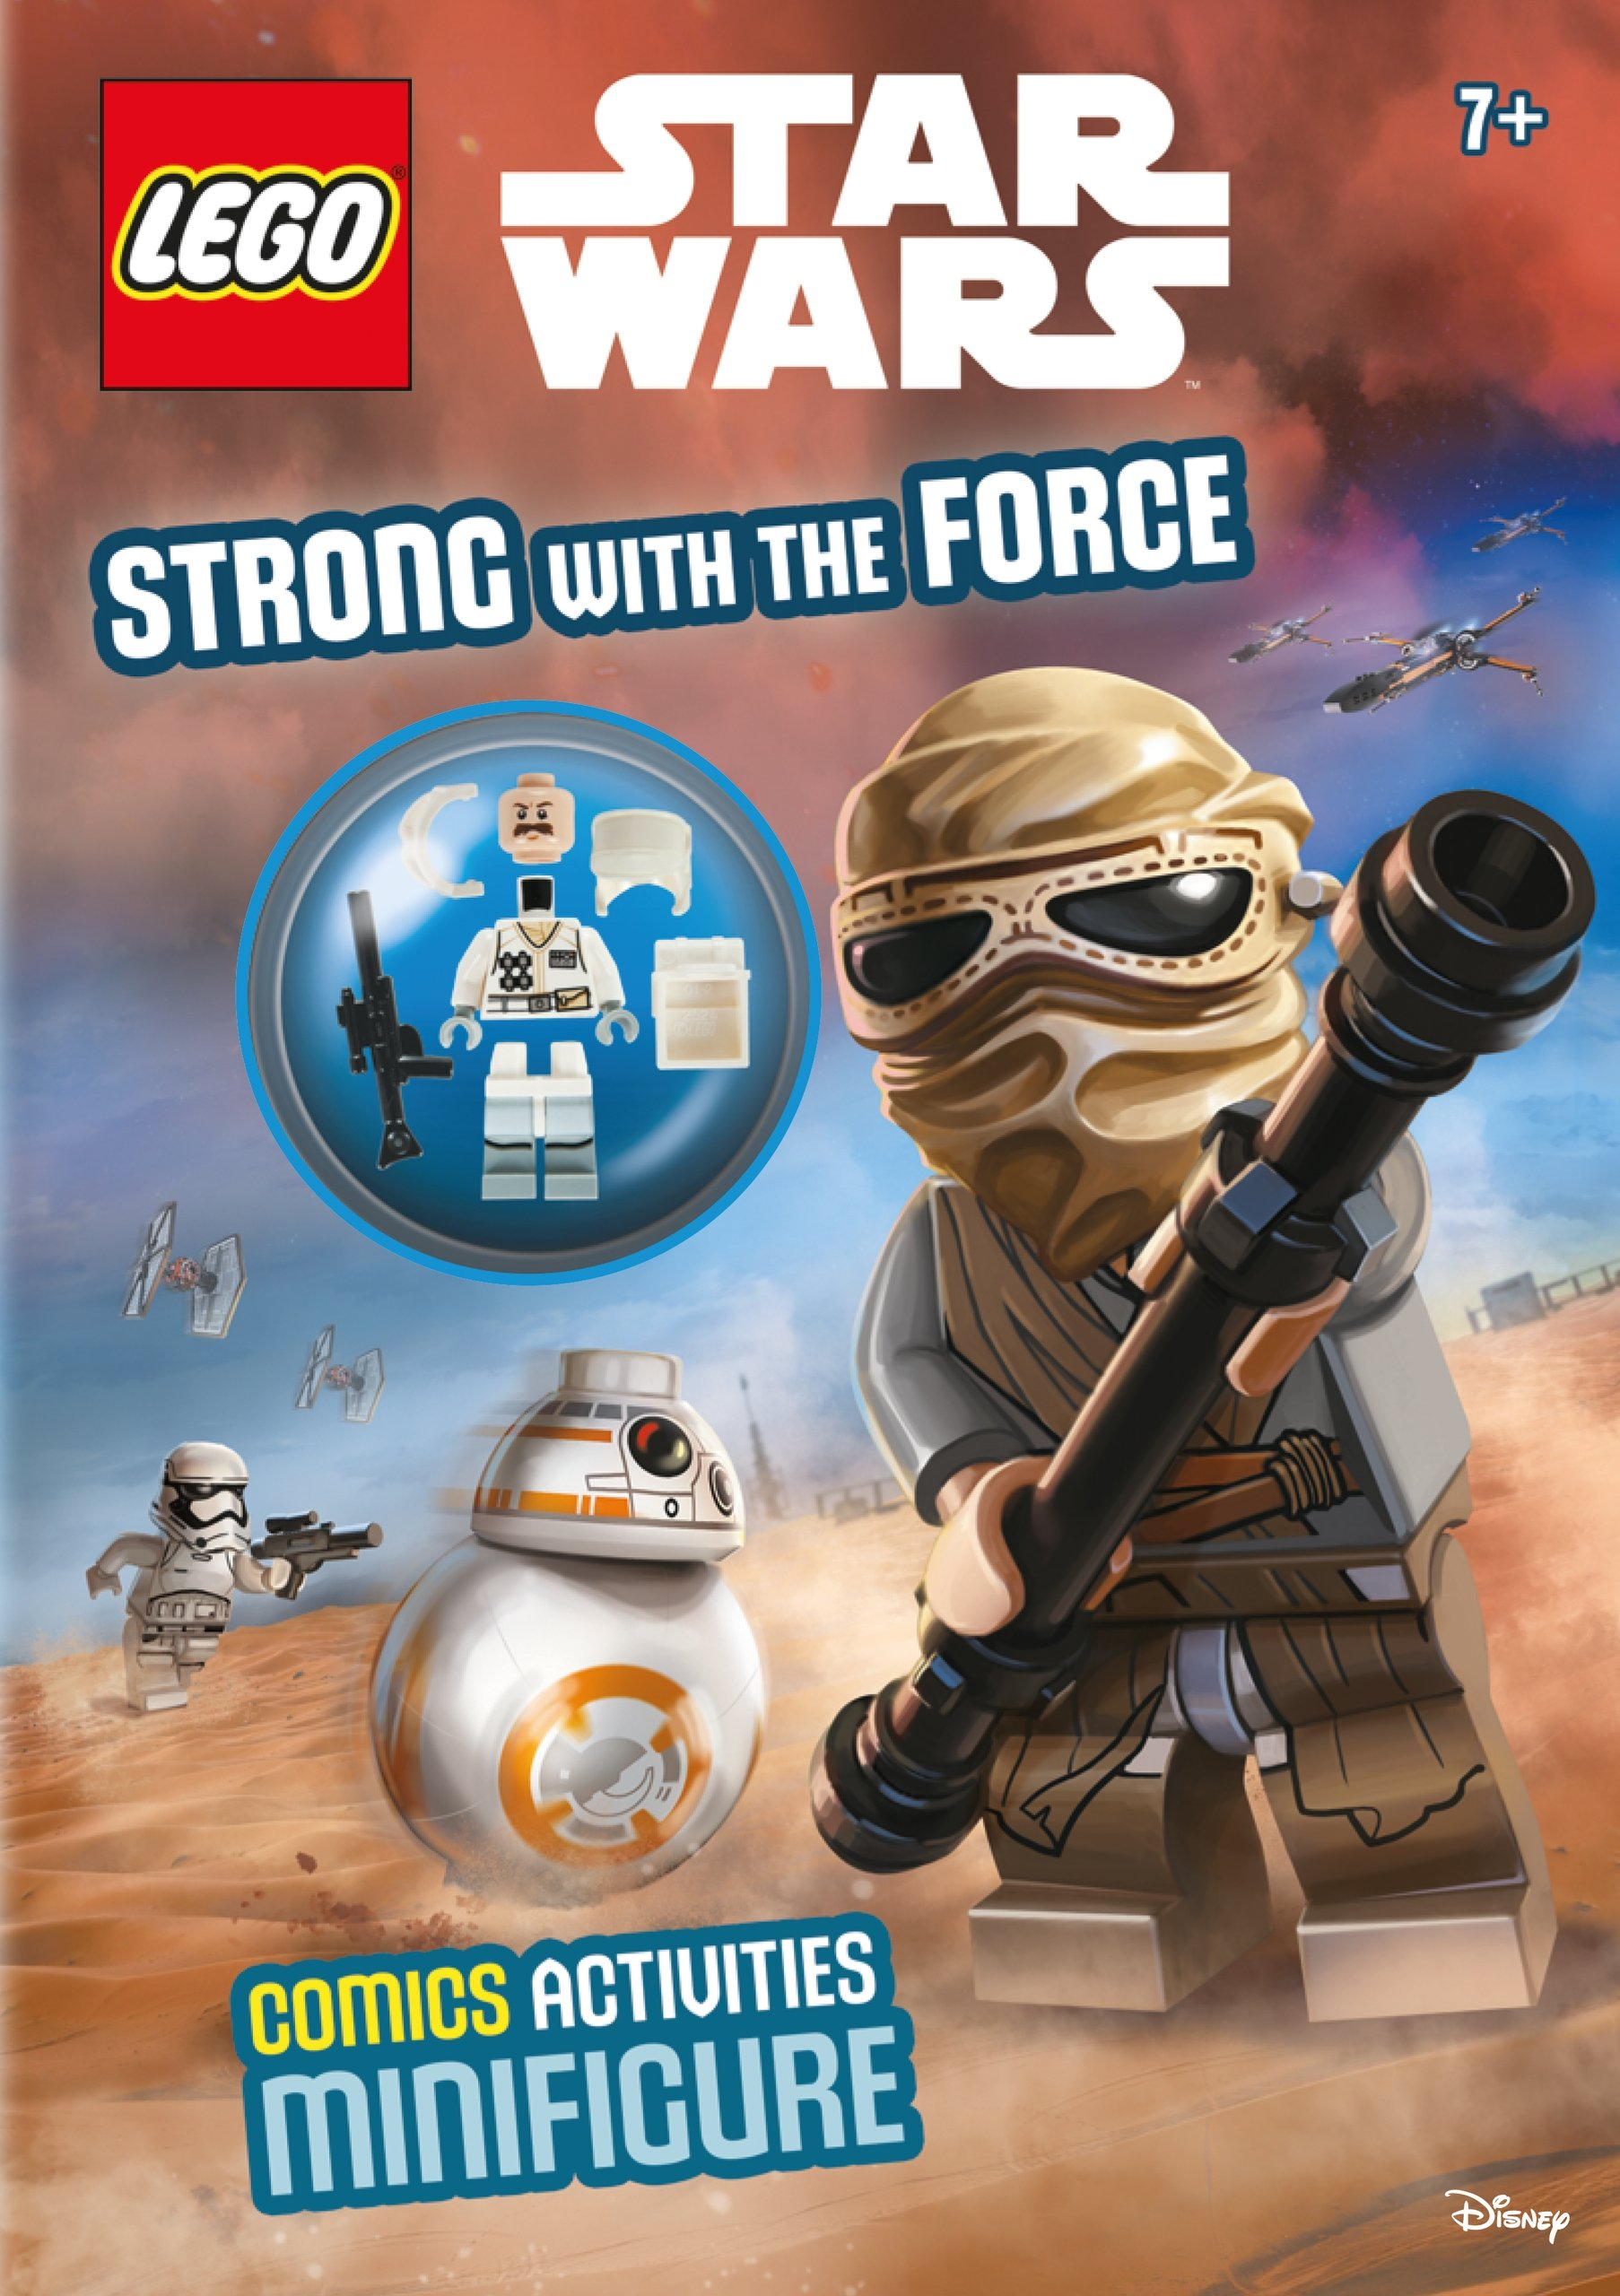 Lego Star Wars: Strong with the Force